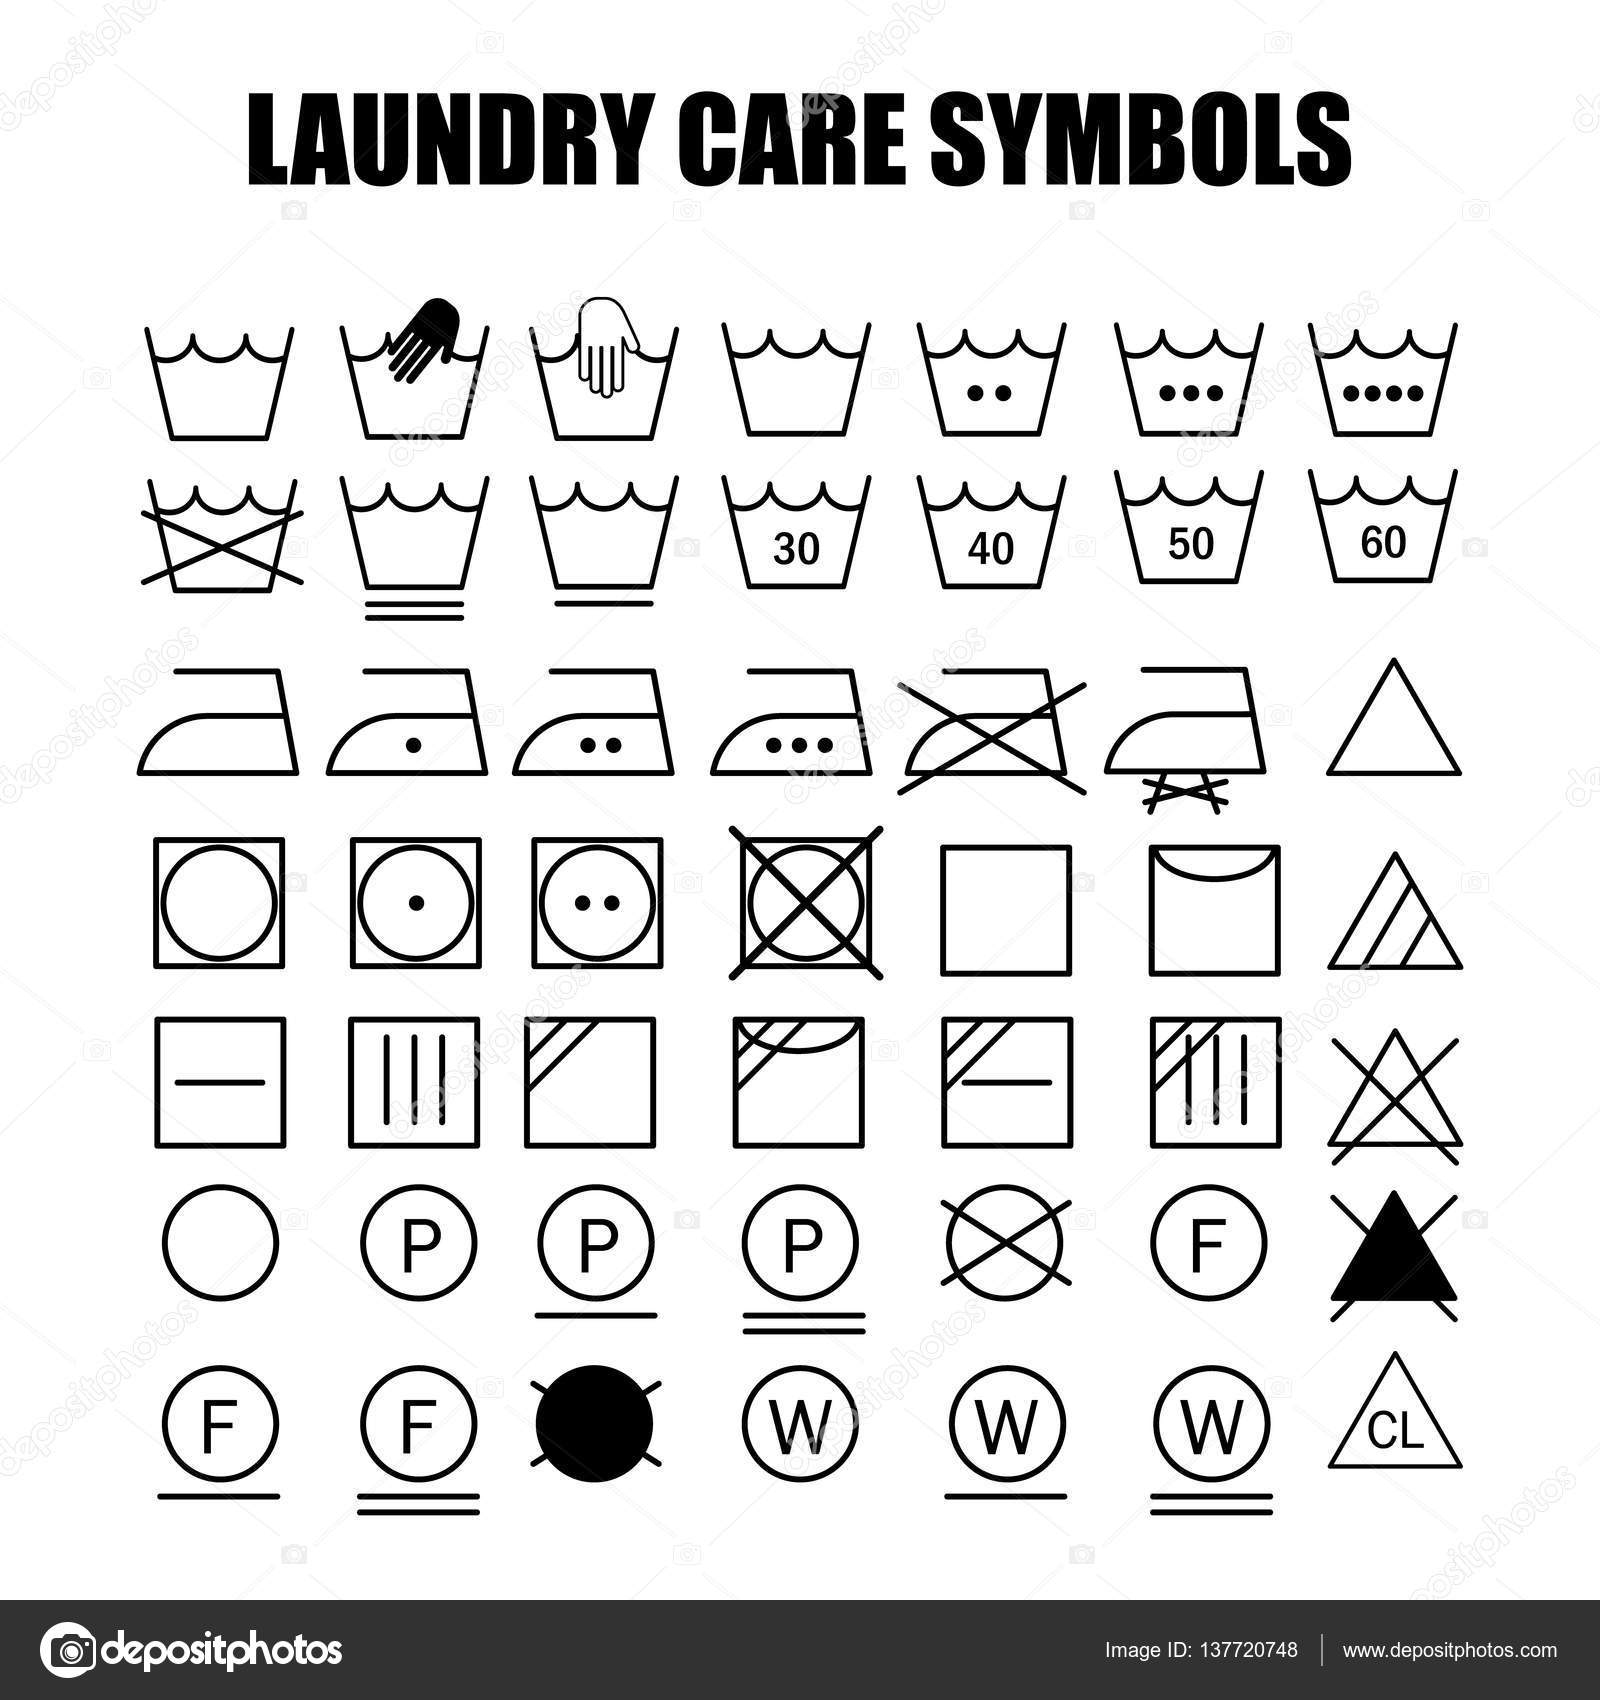 Laundry care symbols set stock vector soloviika 137720748 laundry care symbols set stock vector buycottarizona Gallery